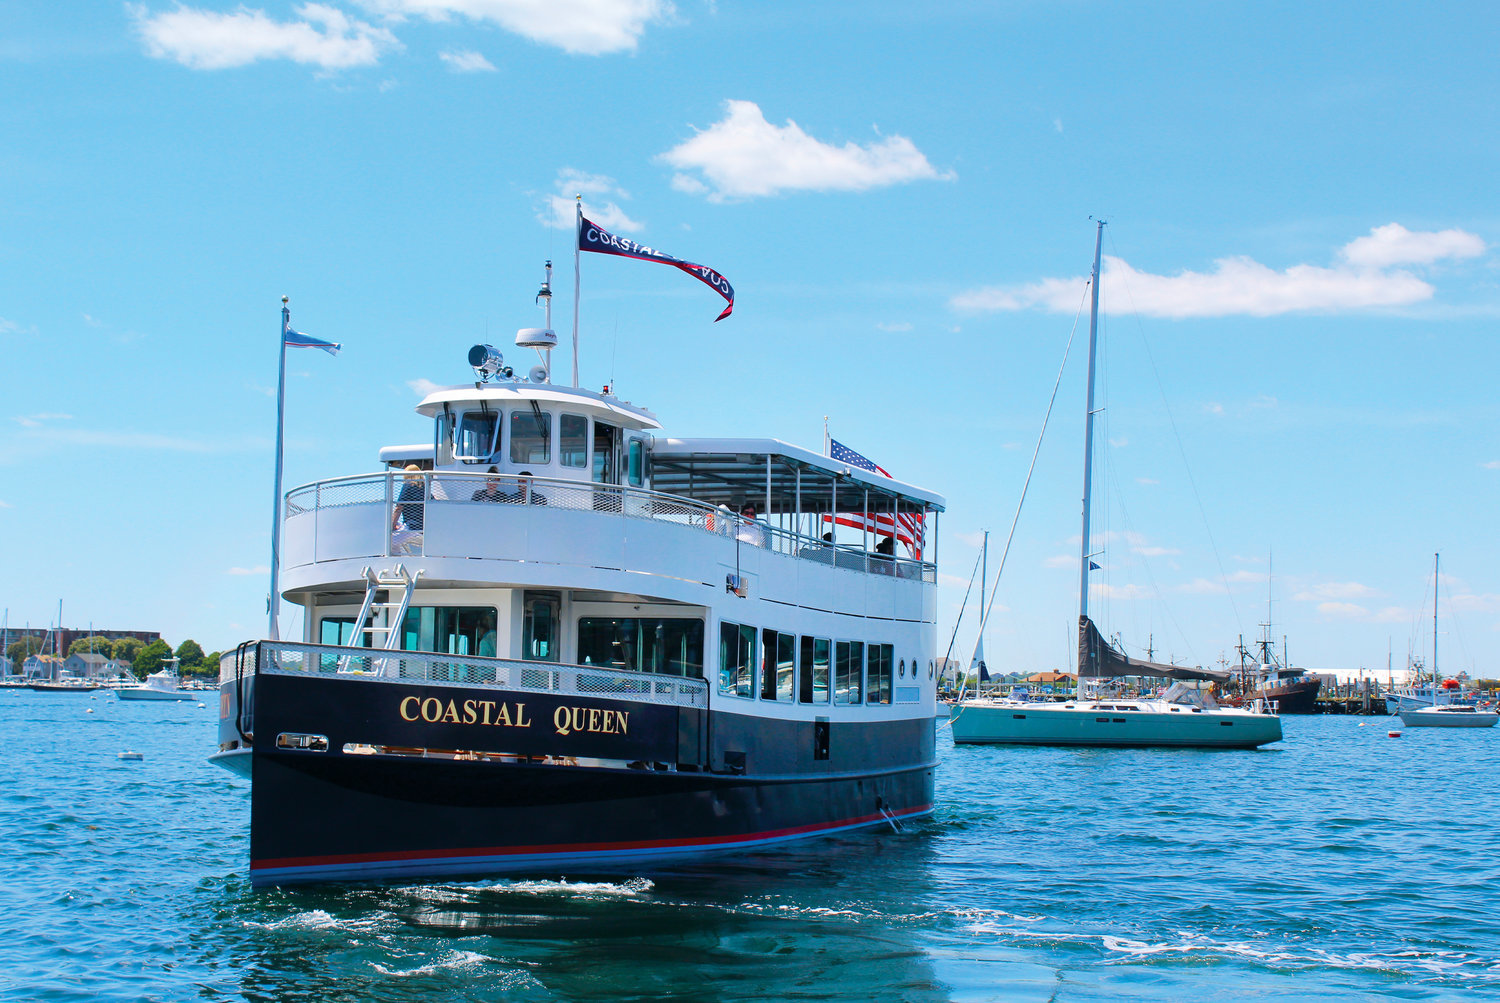 Jamestown Newport Ferry is taking reservations for scenic and sunset cruises aboard COASTAL QUEEN, departing from Jamestown and Newport. See page 39 for details